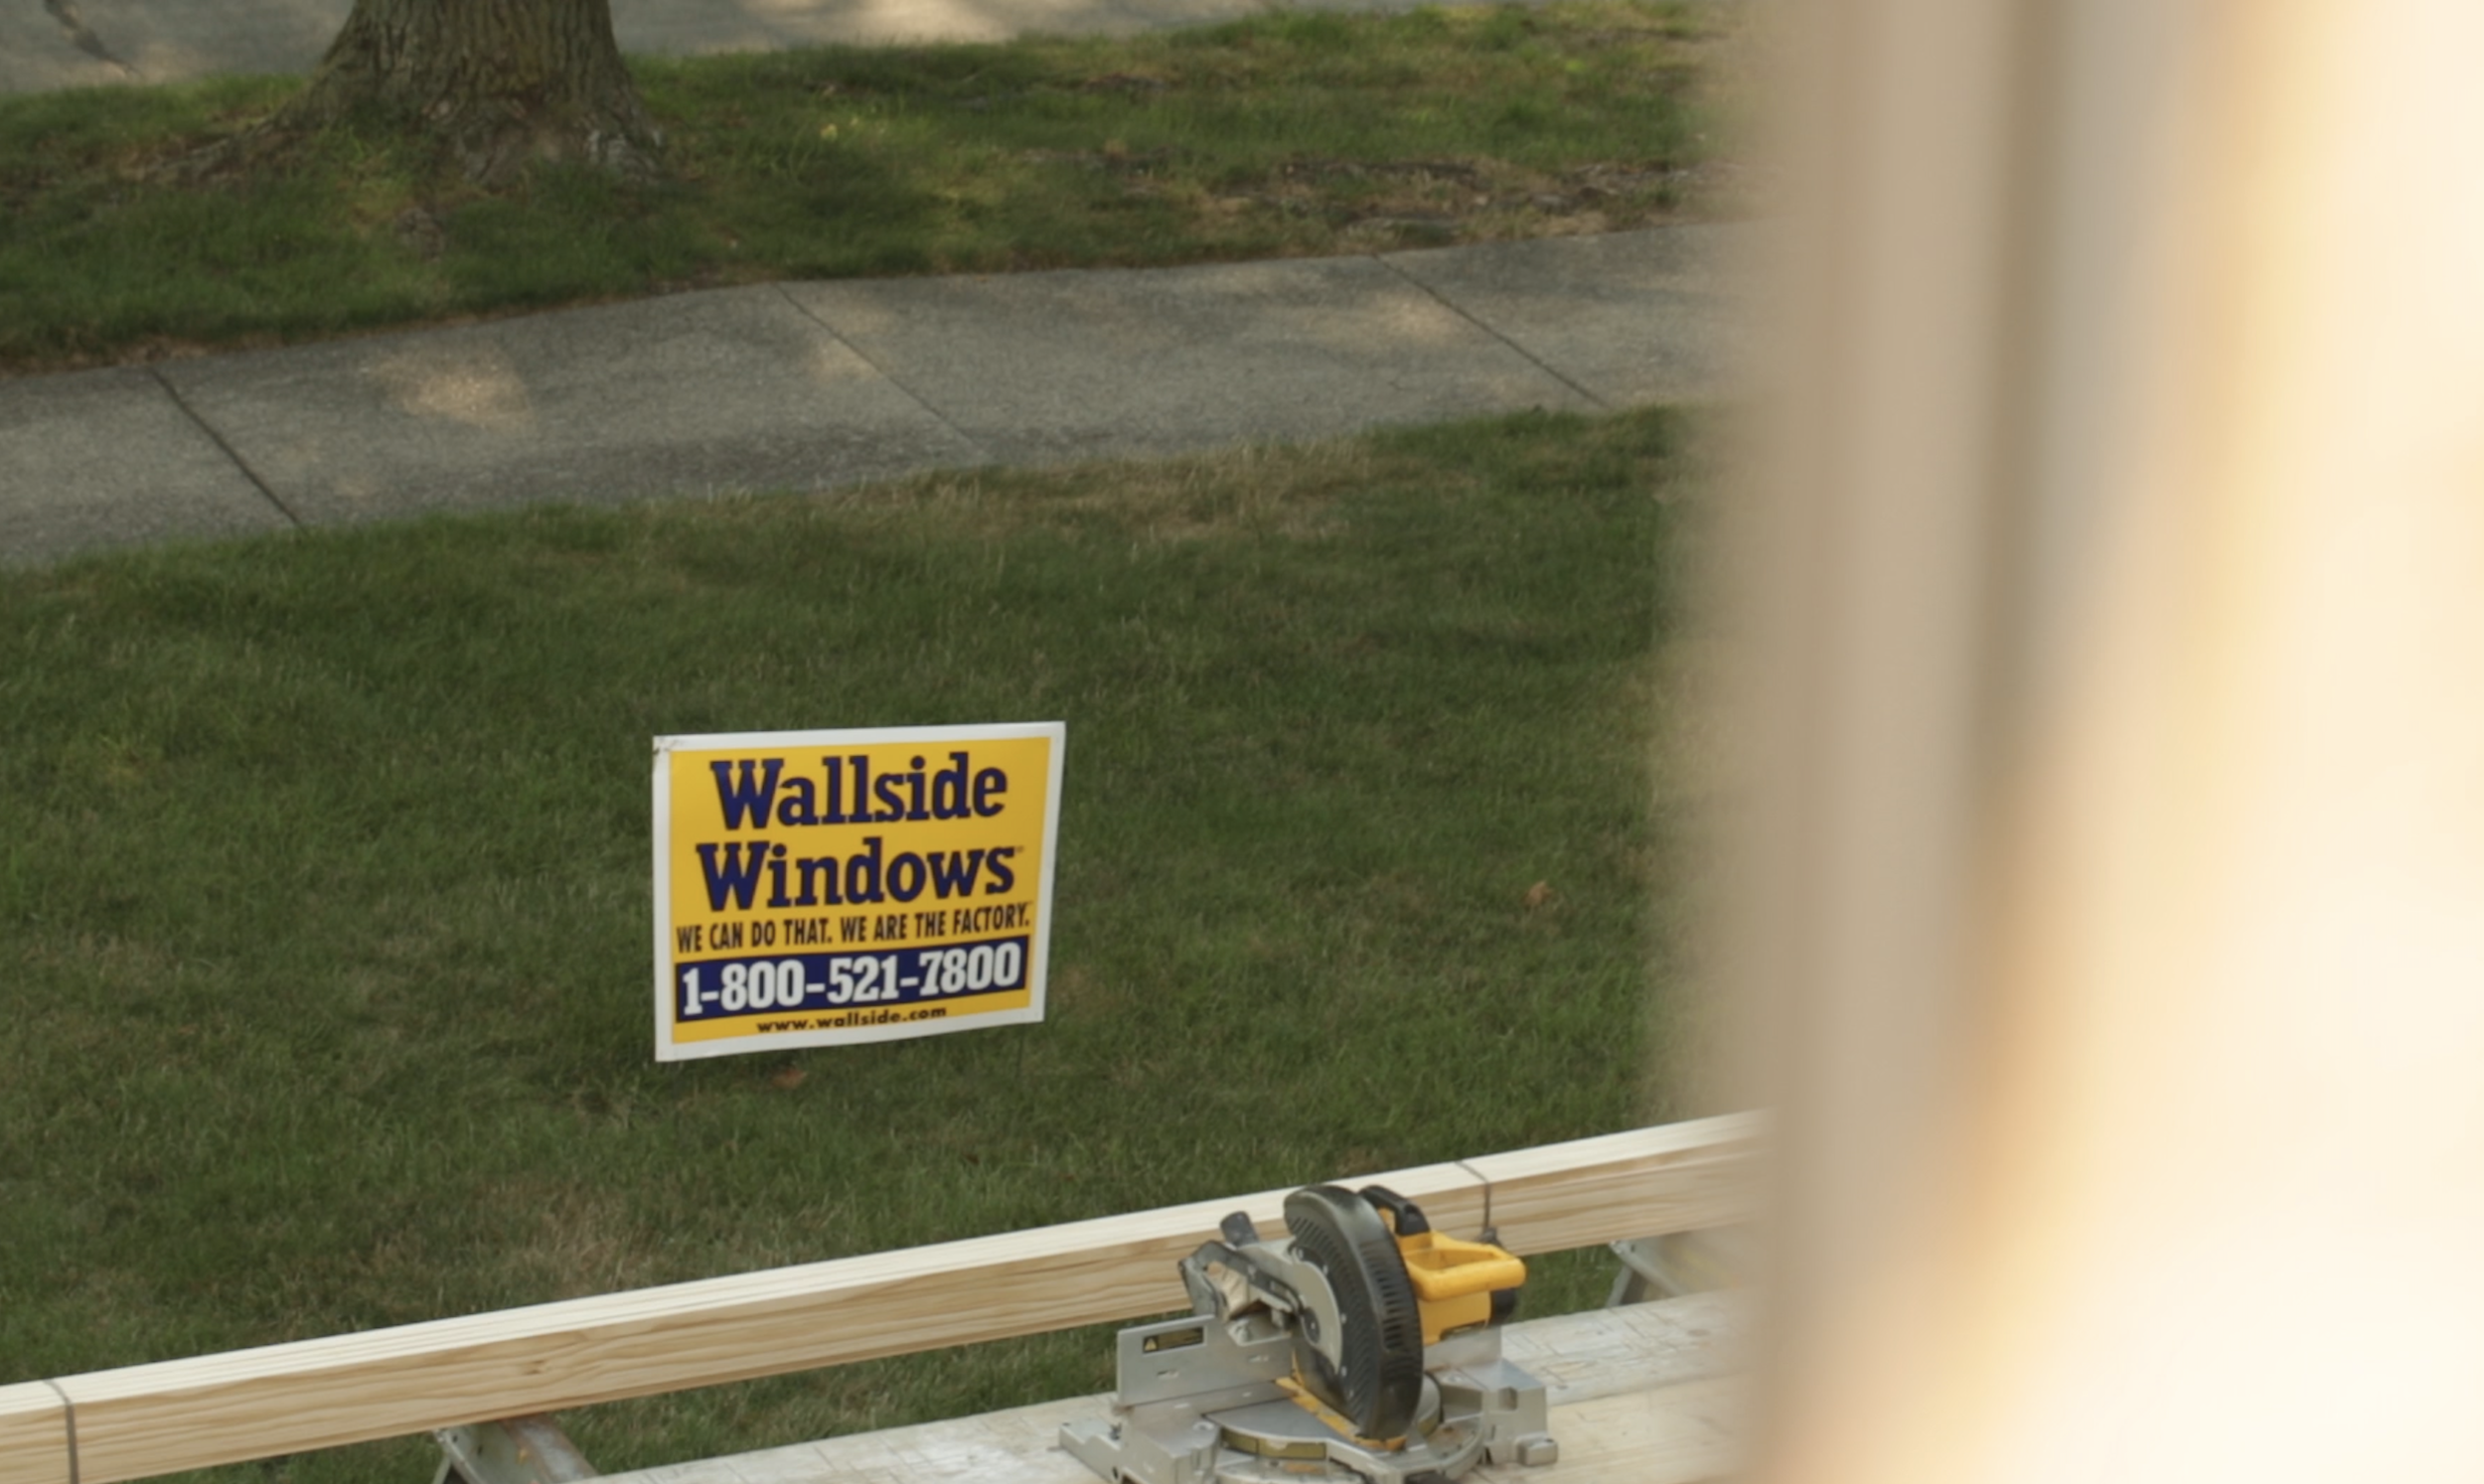 Energy bills rising? It could be time to replace your windows. Wallside offers free estimates.